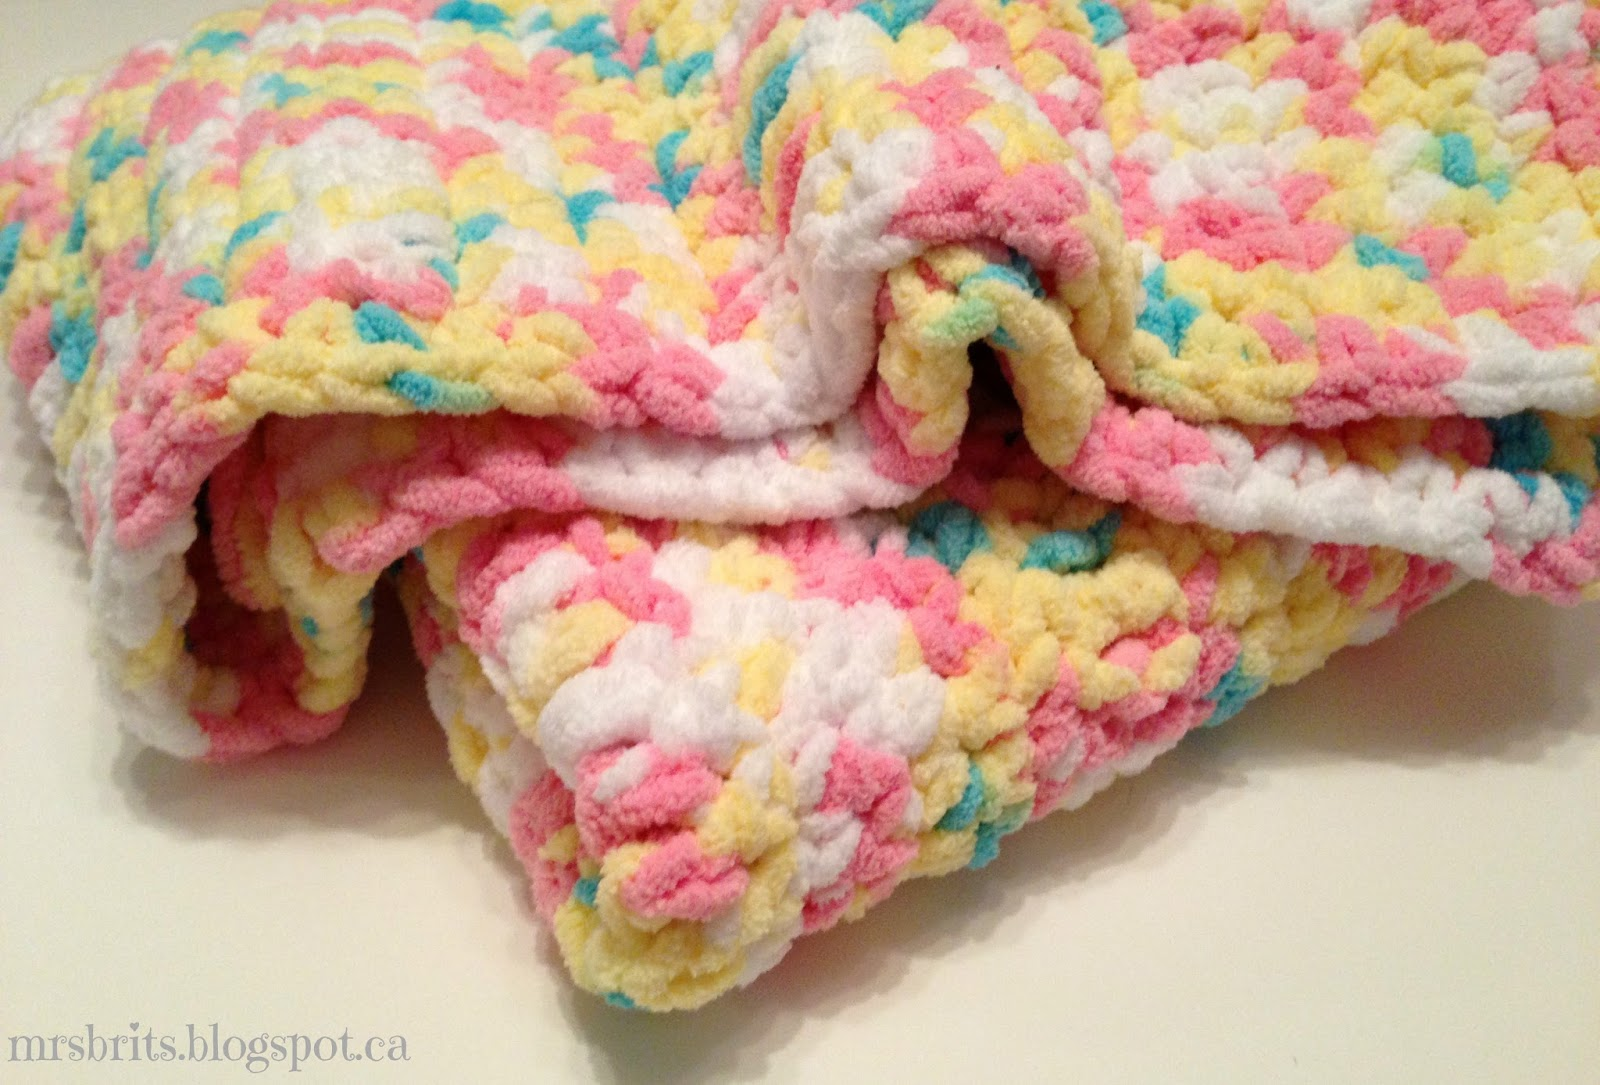 Crochet Patterns And Yarn : MrsBrits: Sweet and Chunky Baby Afghan {Crochet Pattern}